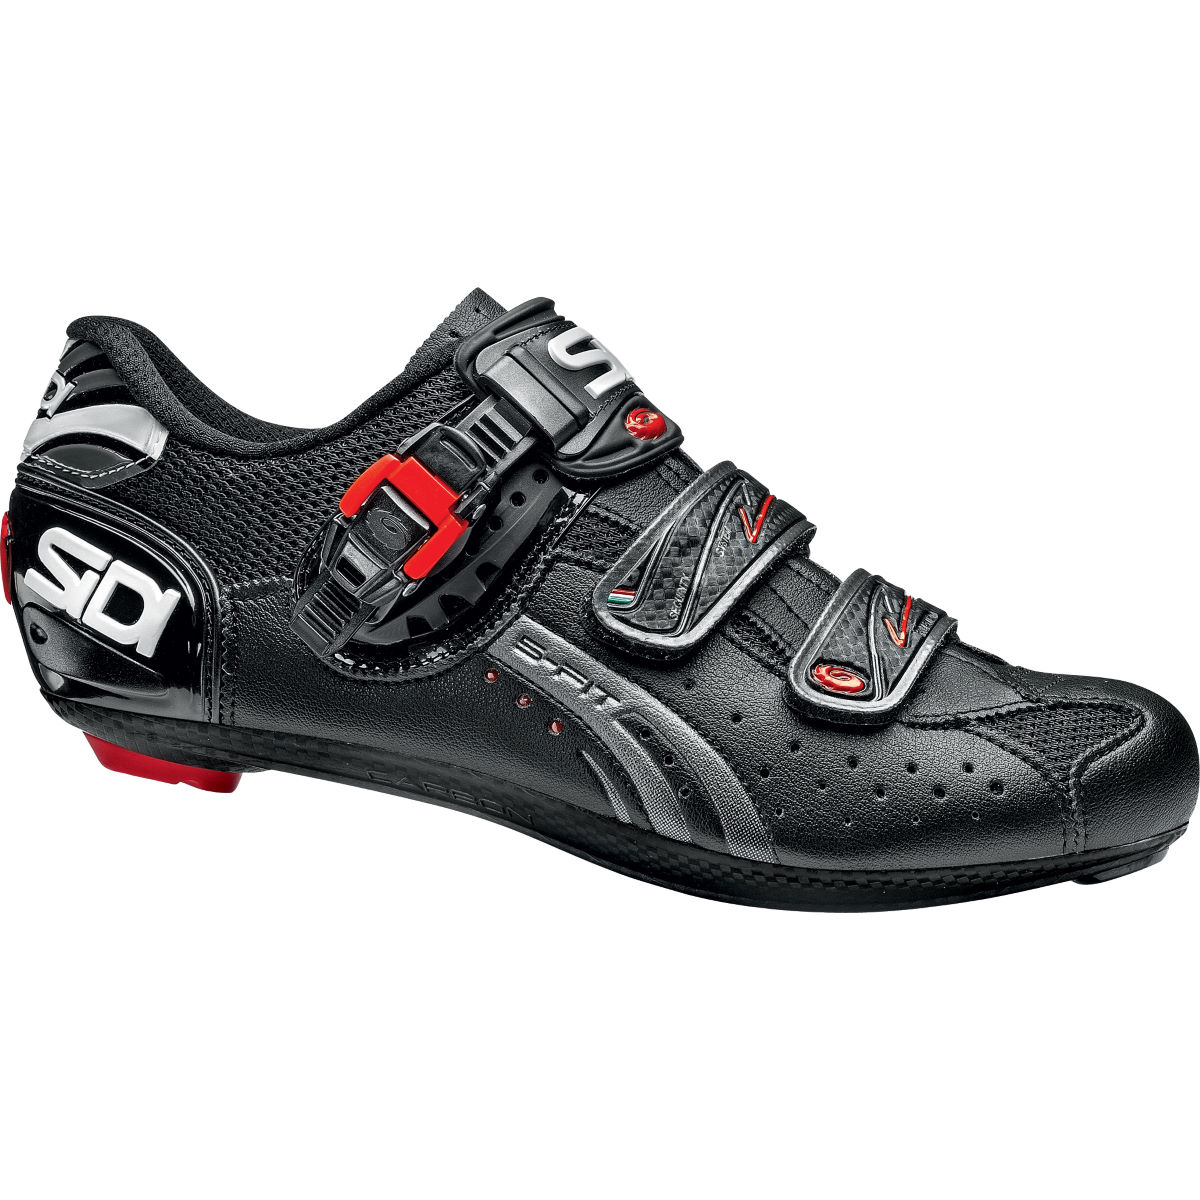 Chaussures de route Sidi Genius 5-Fit Carbon - 52 Black/Black